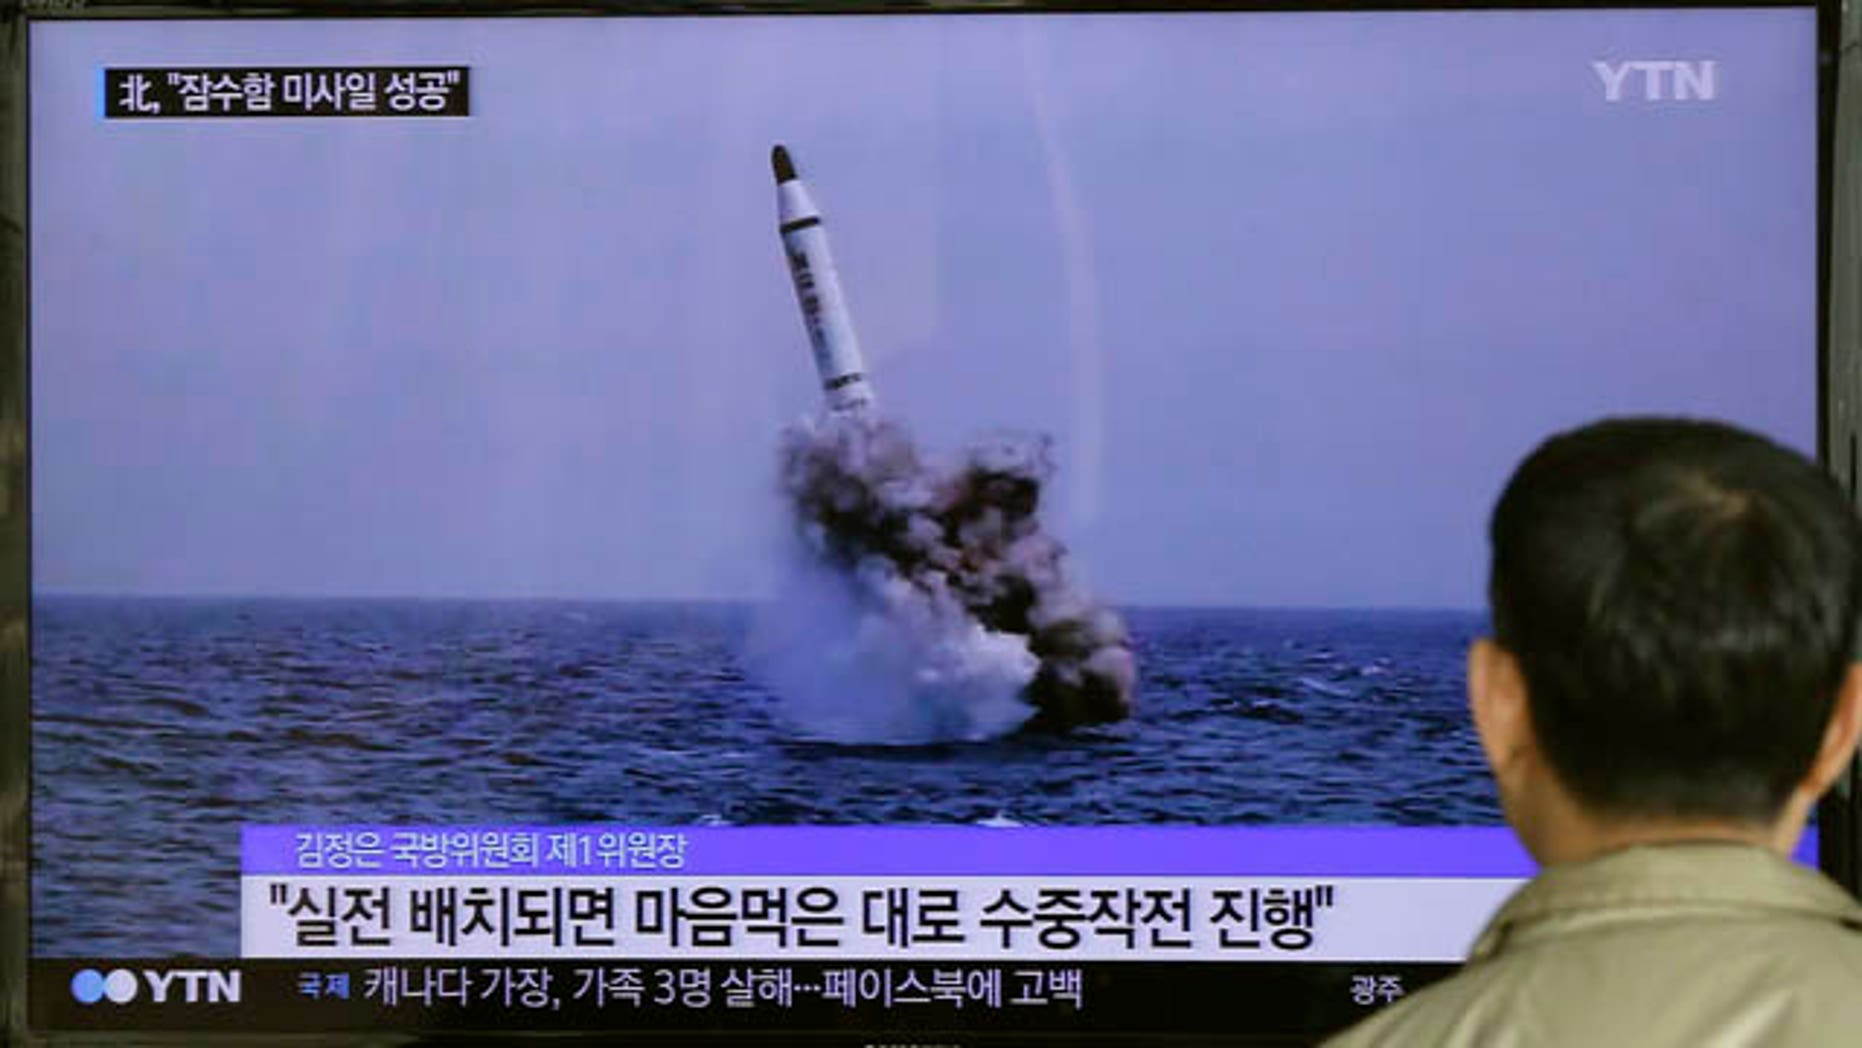 May 9, 2015: A South Korean man watches a TV news program showing an image published in North Korea's Rodong Sinmun newspaper of North Korea's ballistic missile believed to have been launched from underwater, at Seoul Railway station.(AP Photo/Ahn Young-oon)